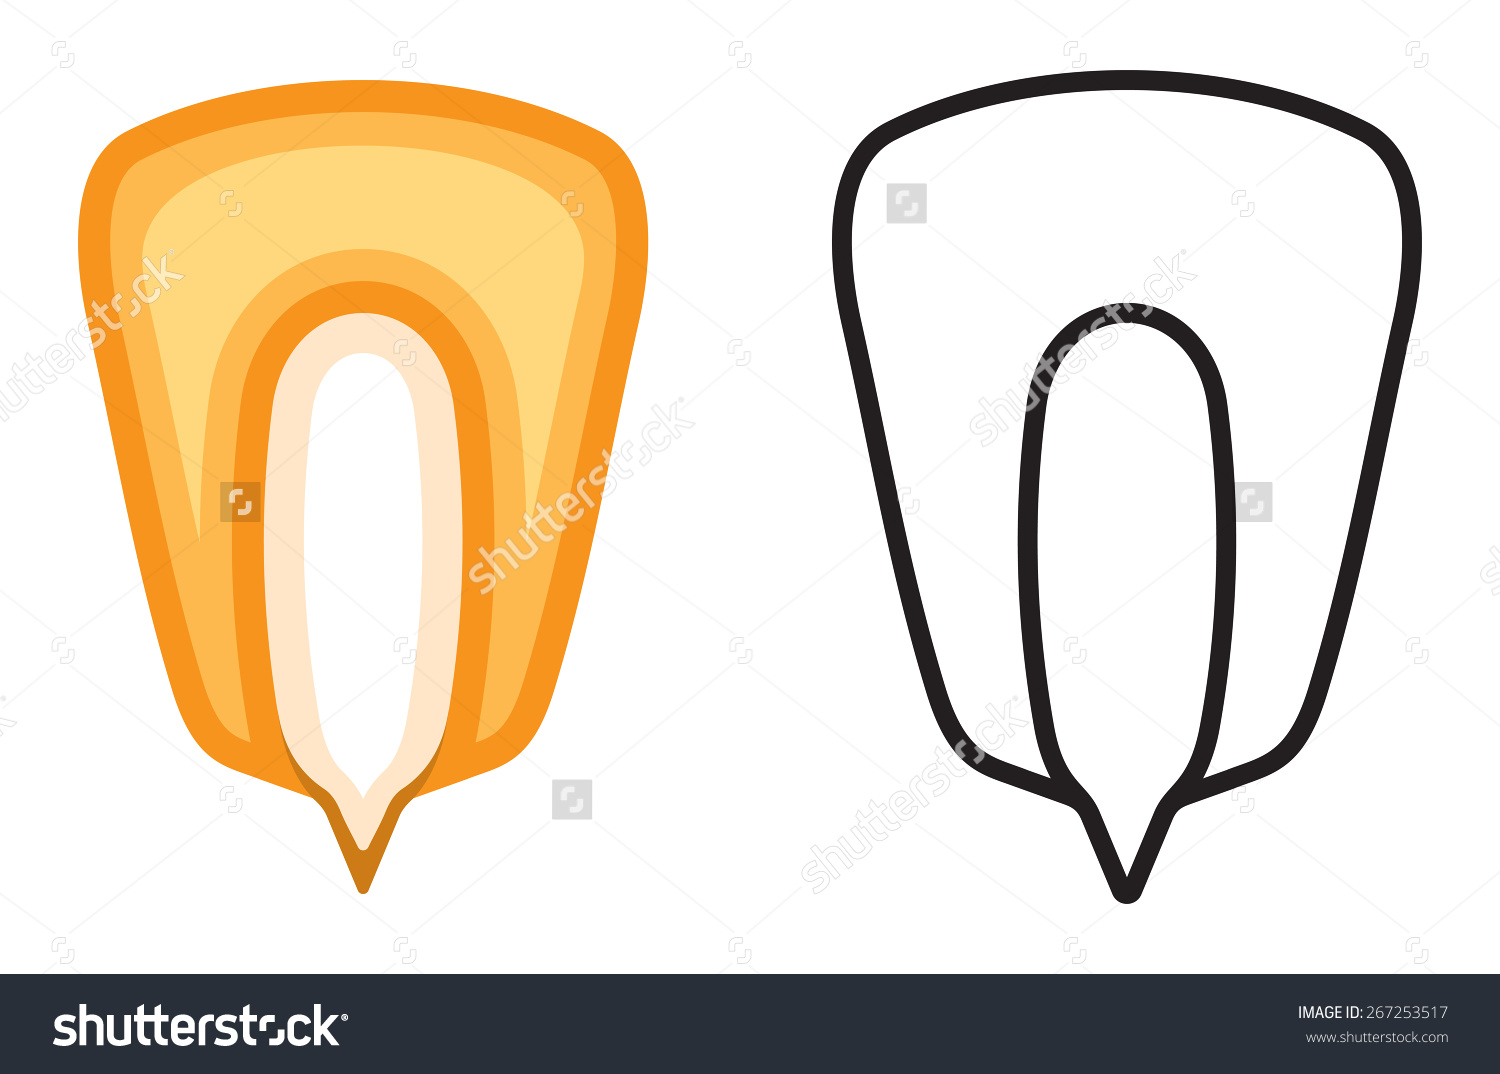 Corn Seed Vector Icon Stock Vector 267253517.